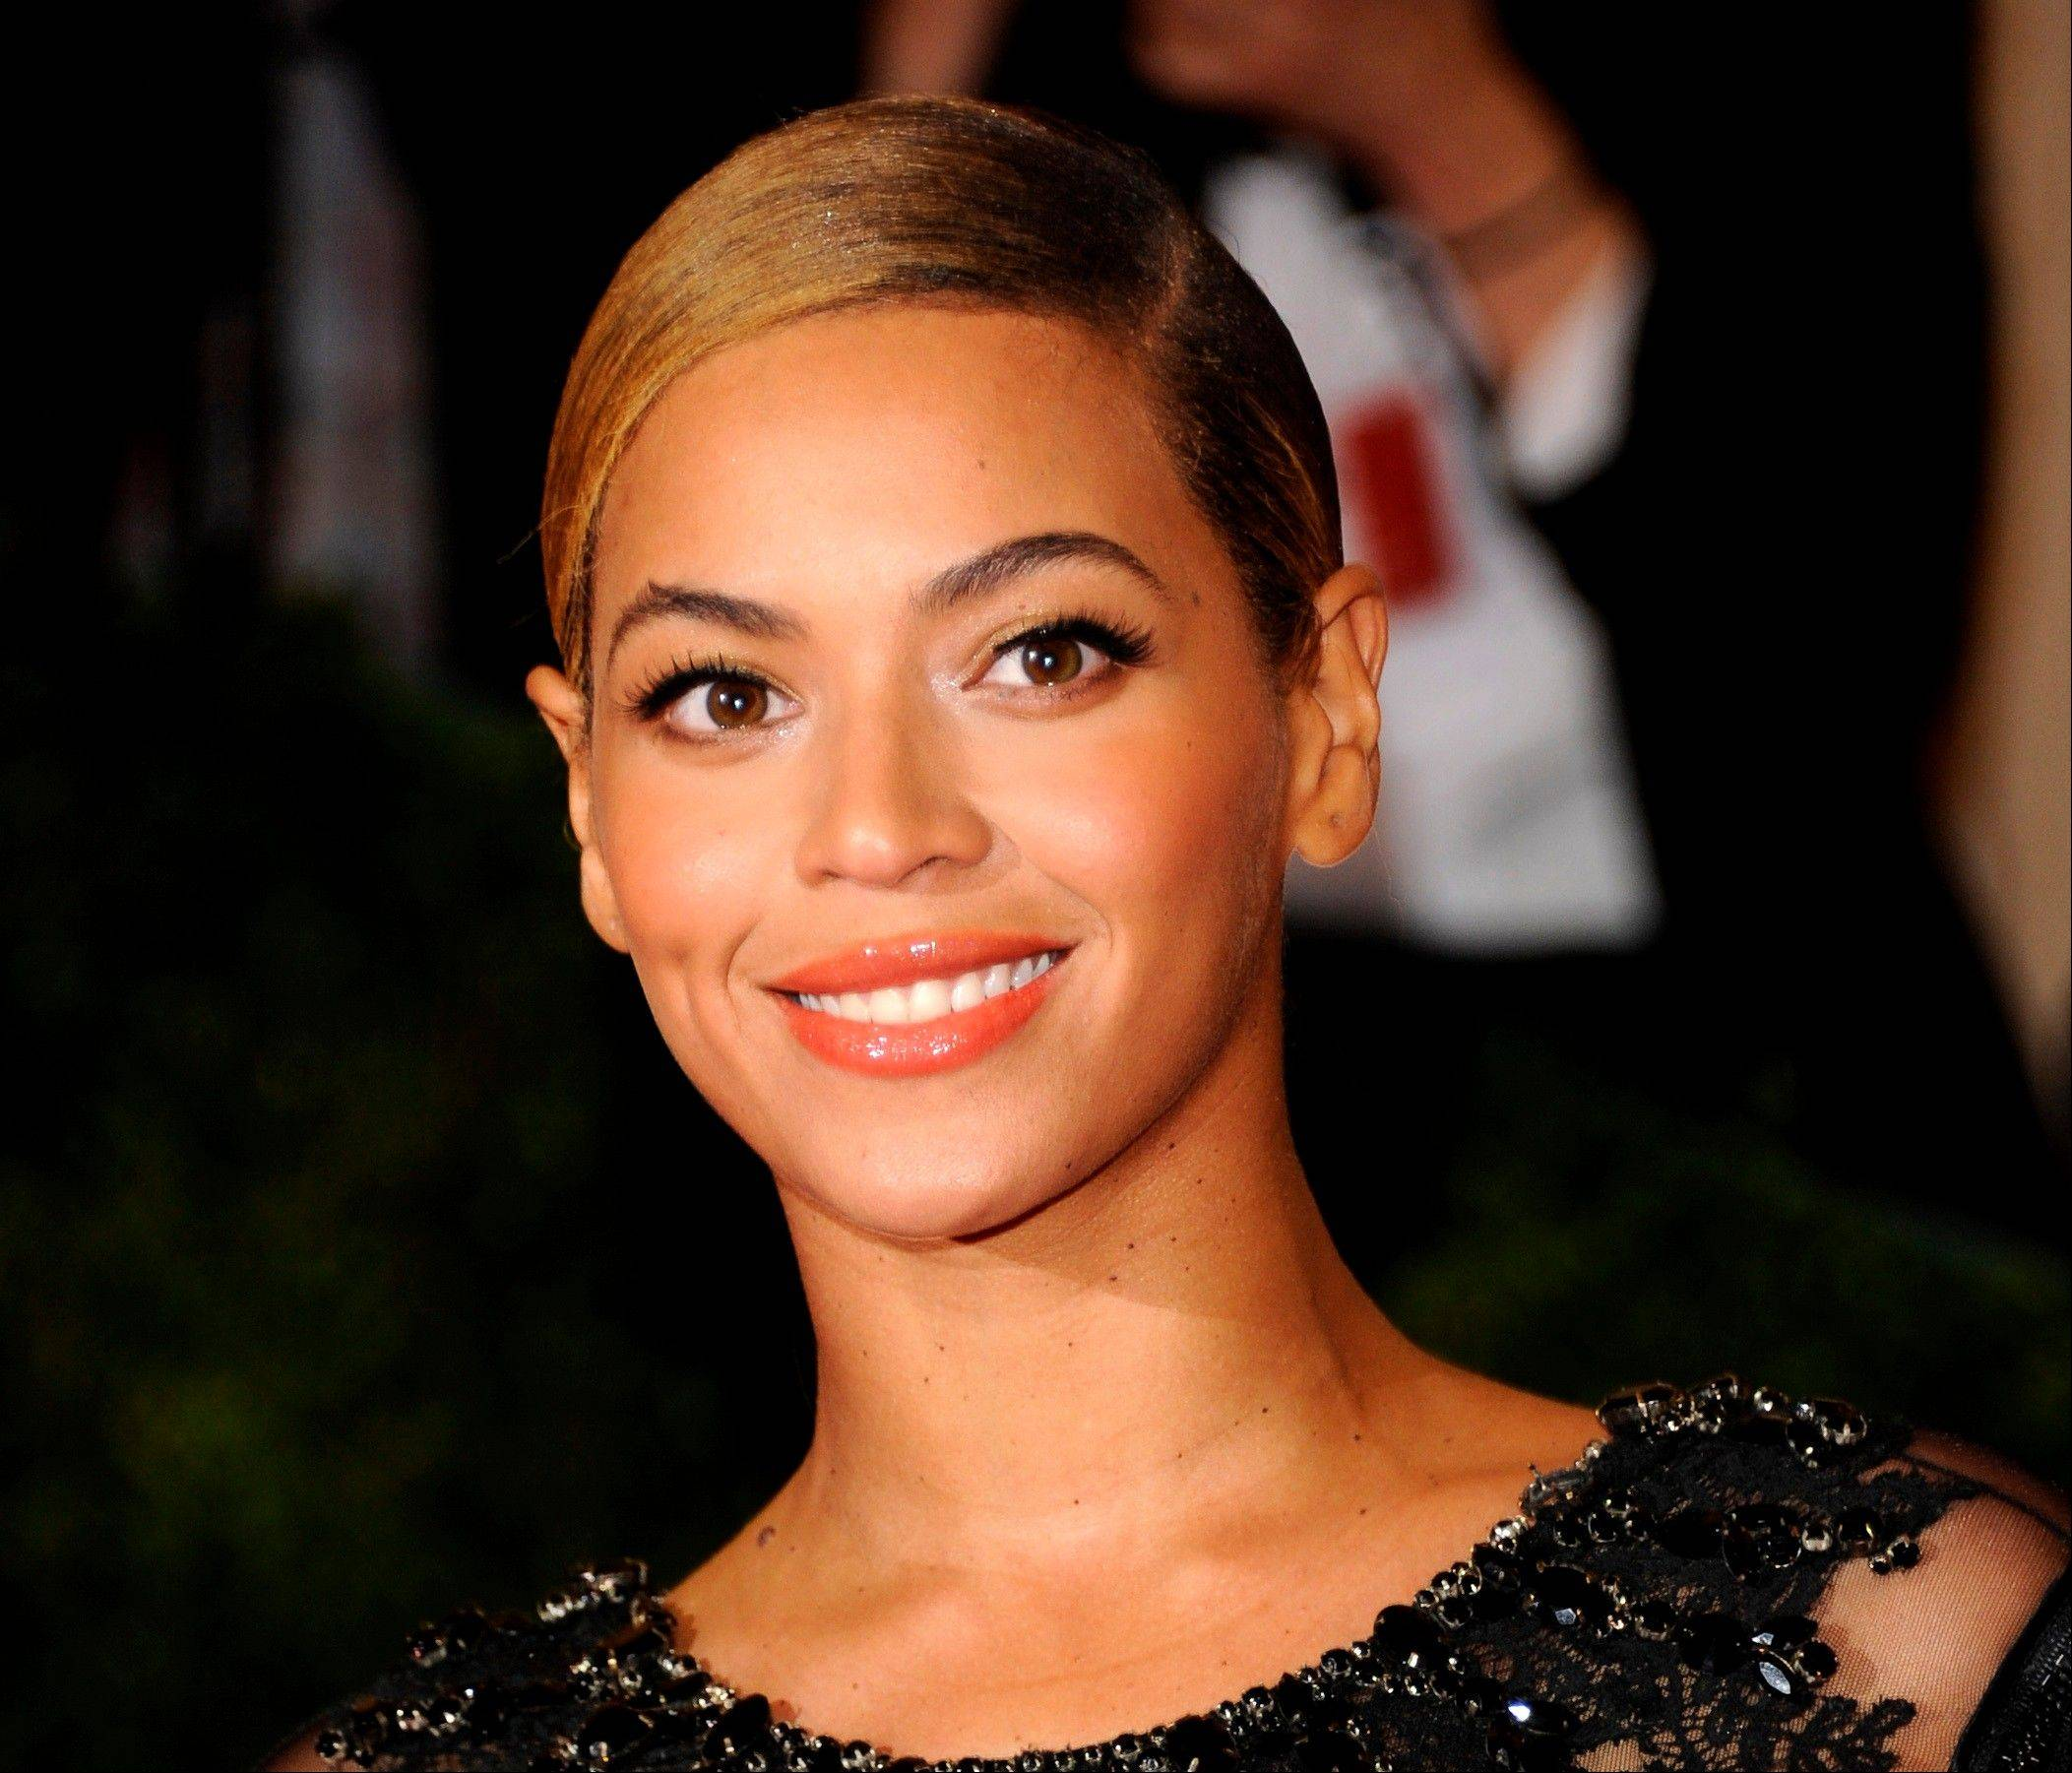 Beyonc� will sing the national anthem at President Barack Obama's inauguration ceremony on Jan. 21.